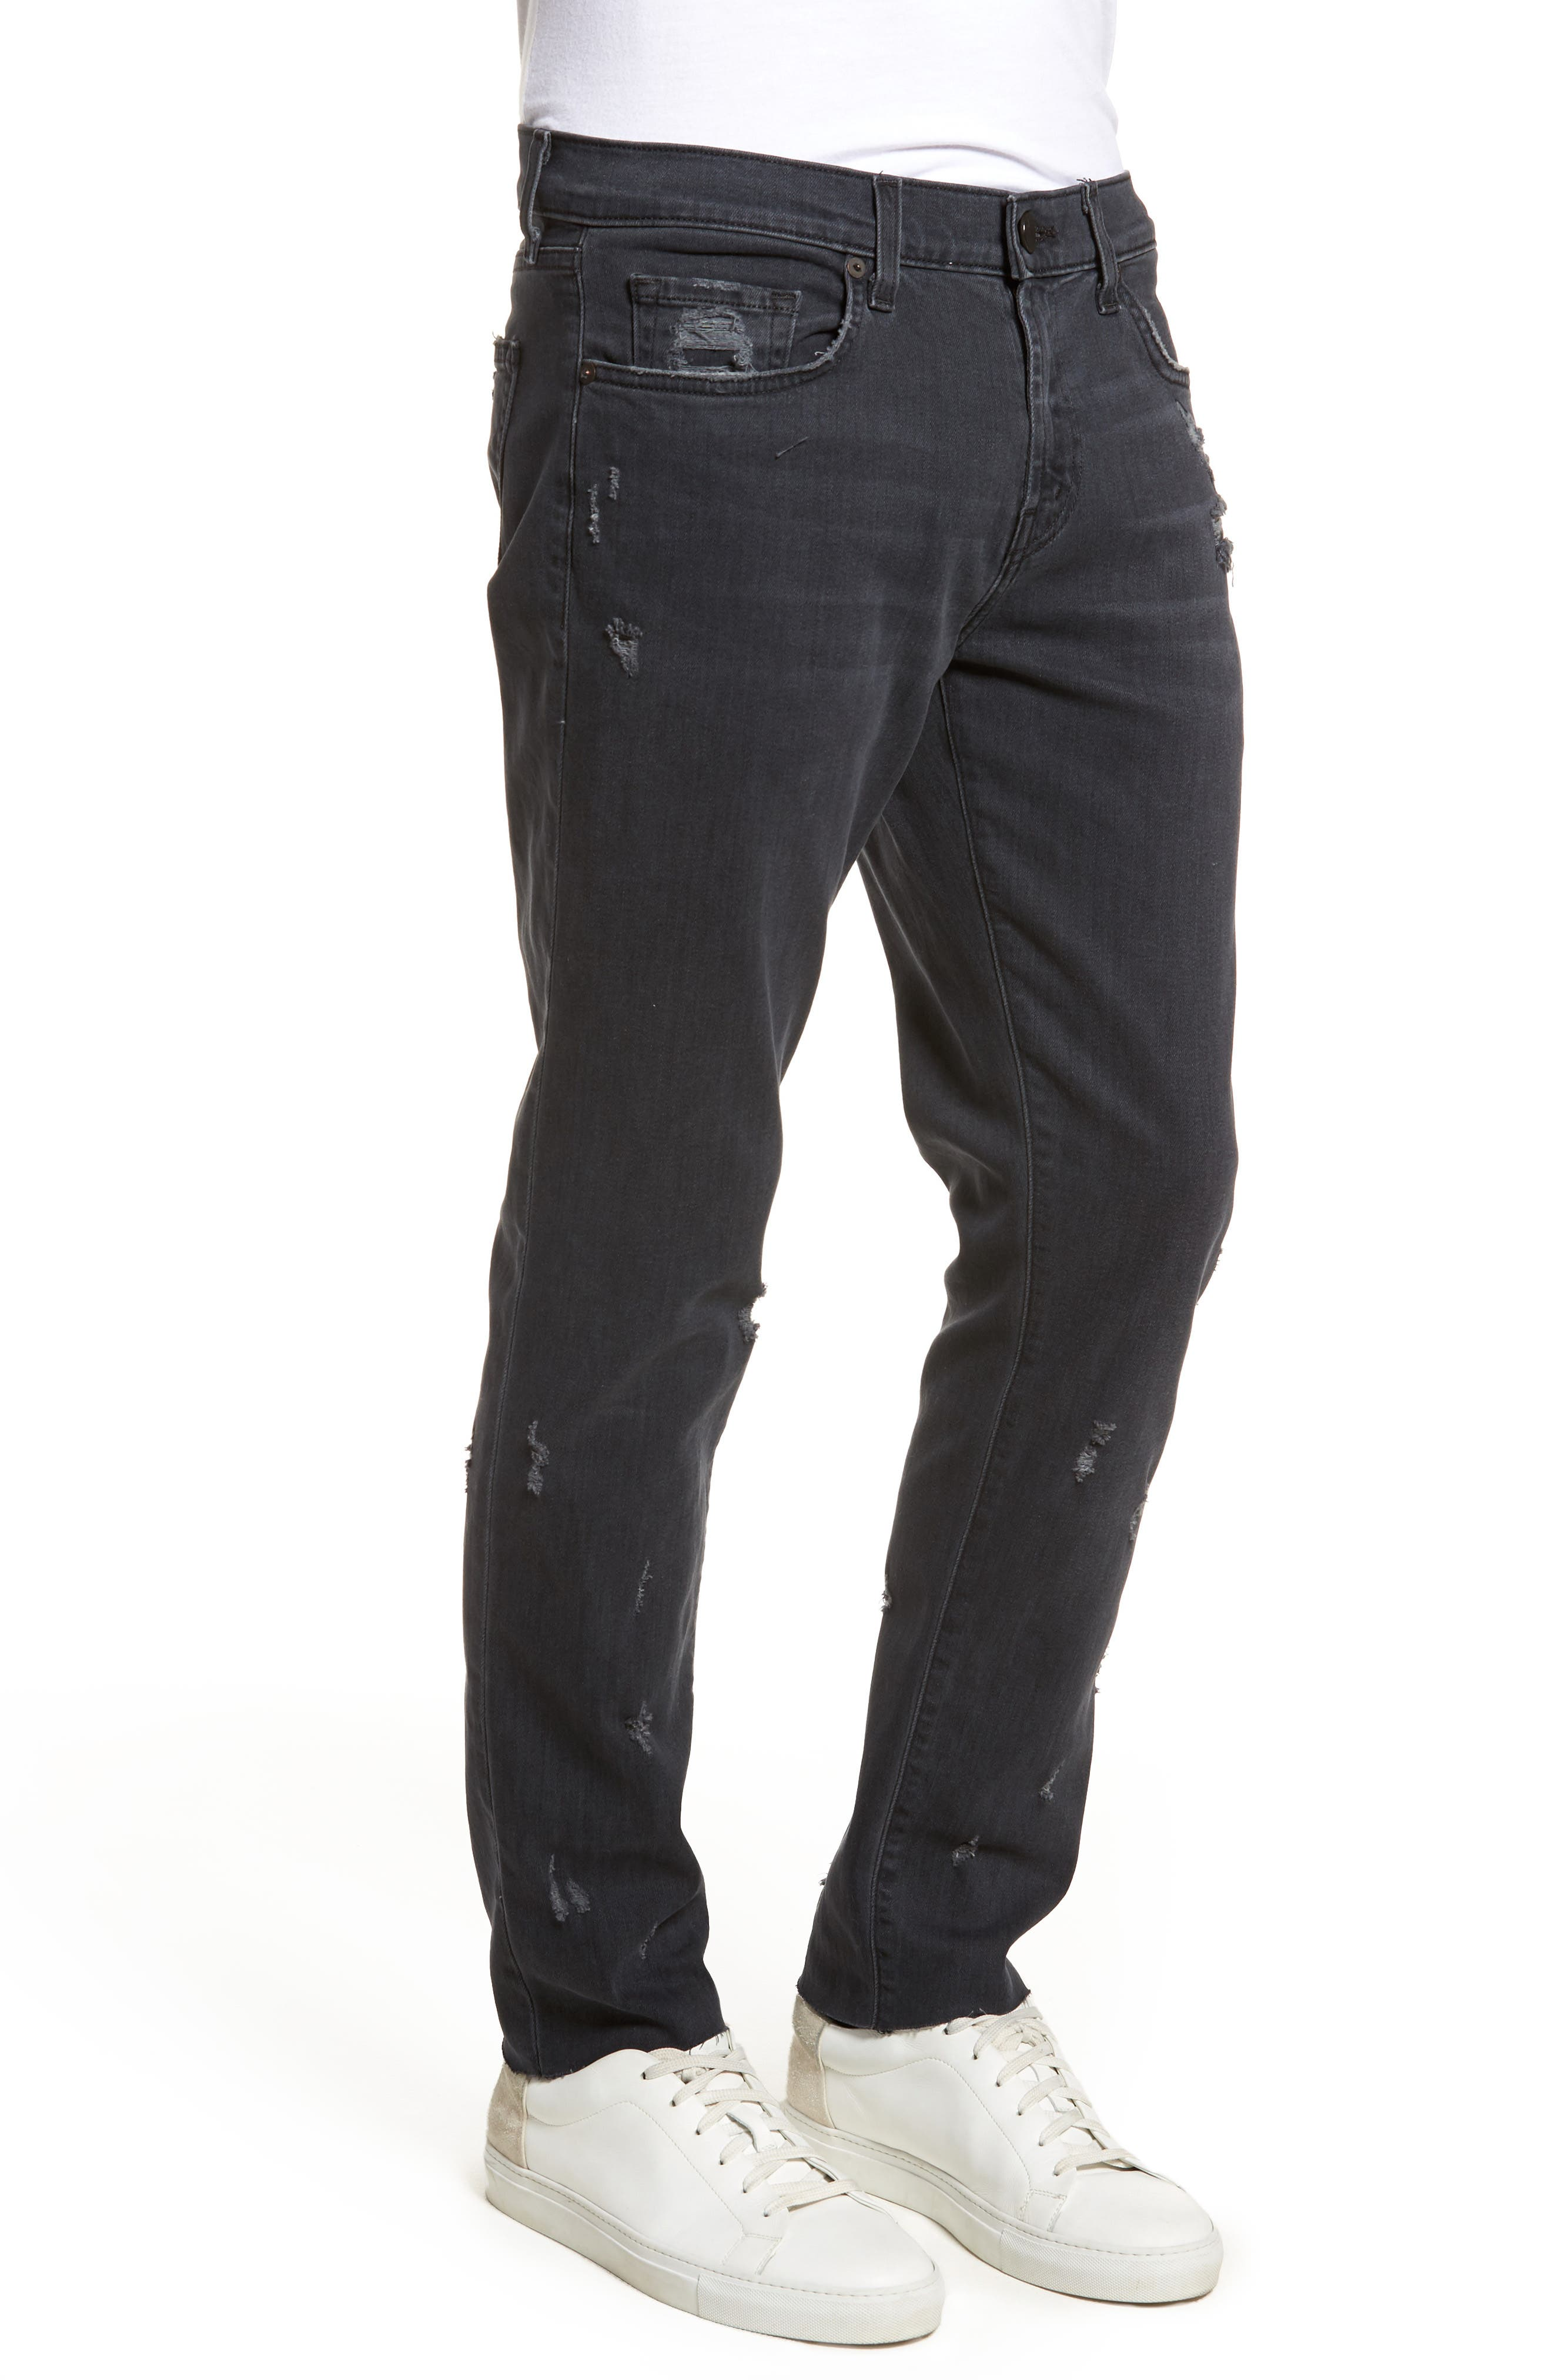 Tyler Slim Fit Jeans,                             Alternate thumbnail 3, color,                             Glauconite